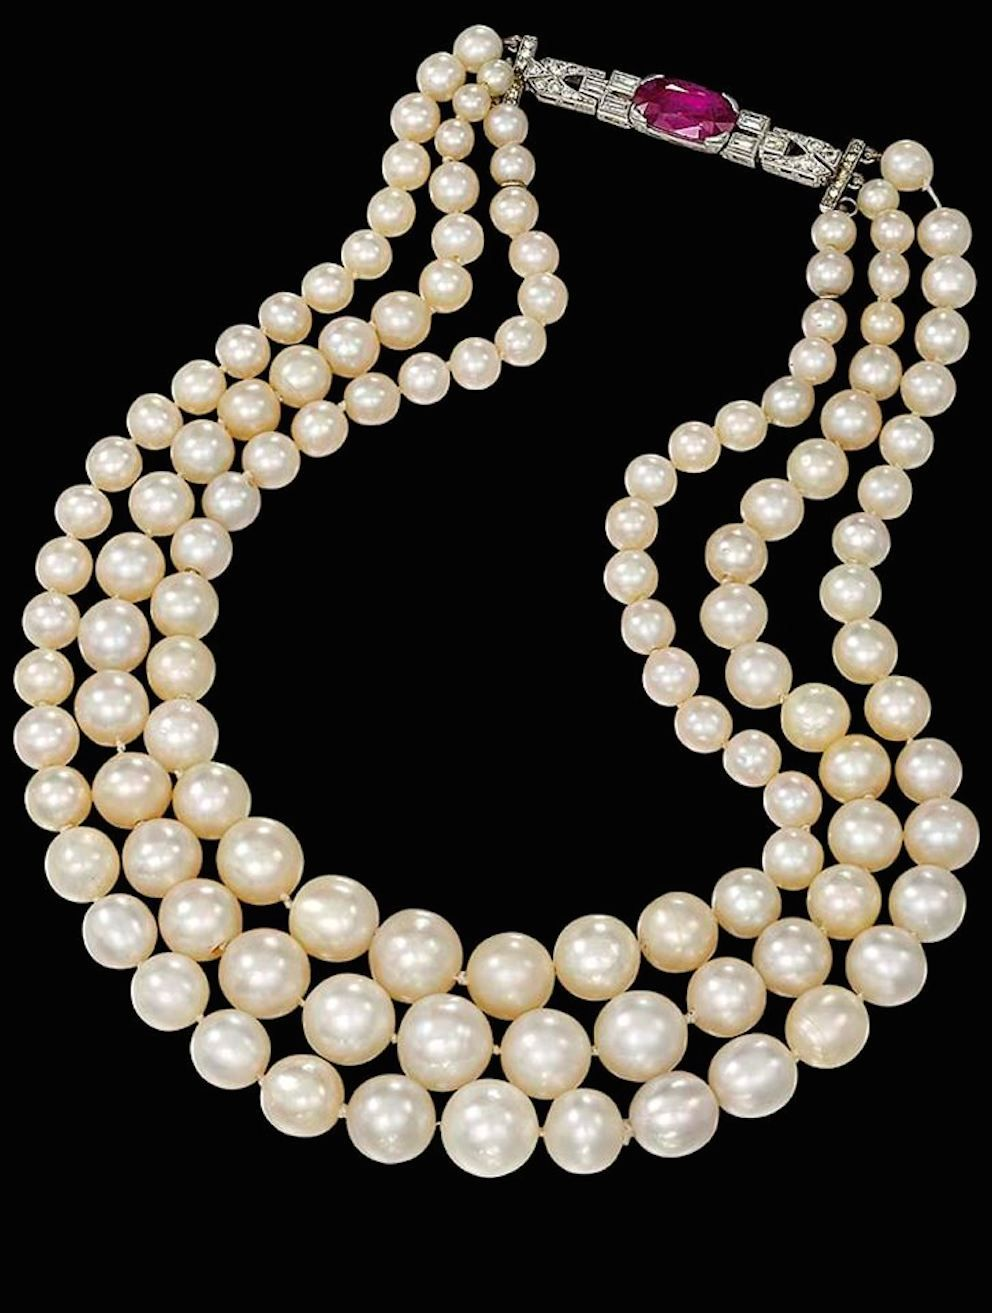 jewel twist pearls necklace villa products classical pearl